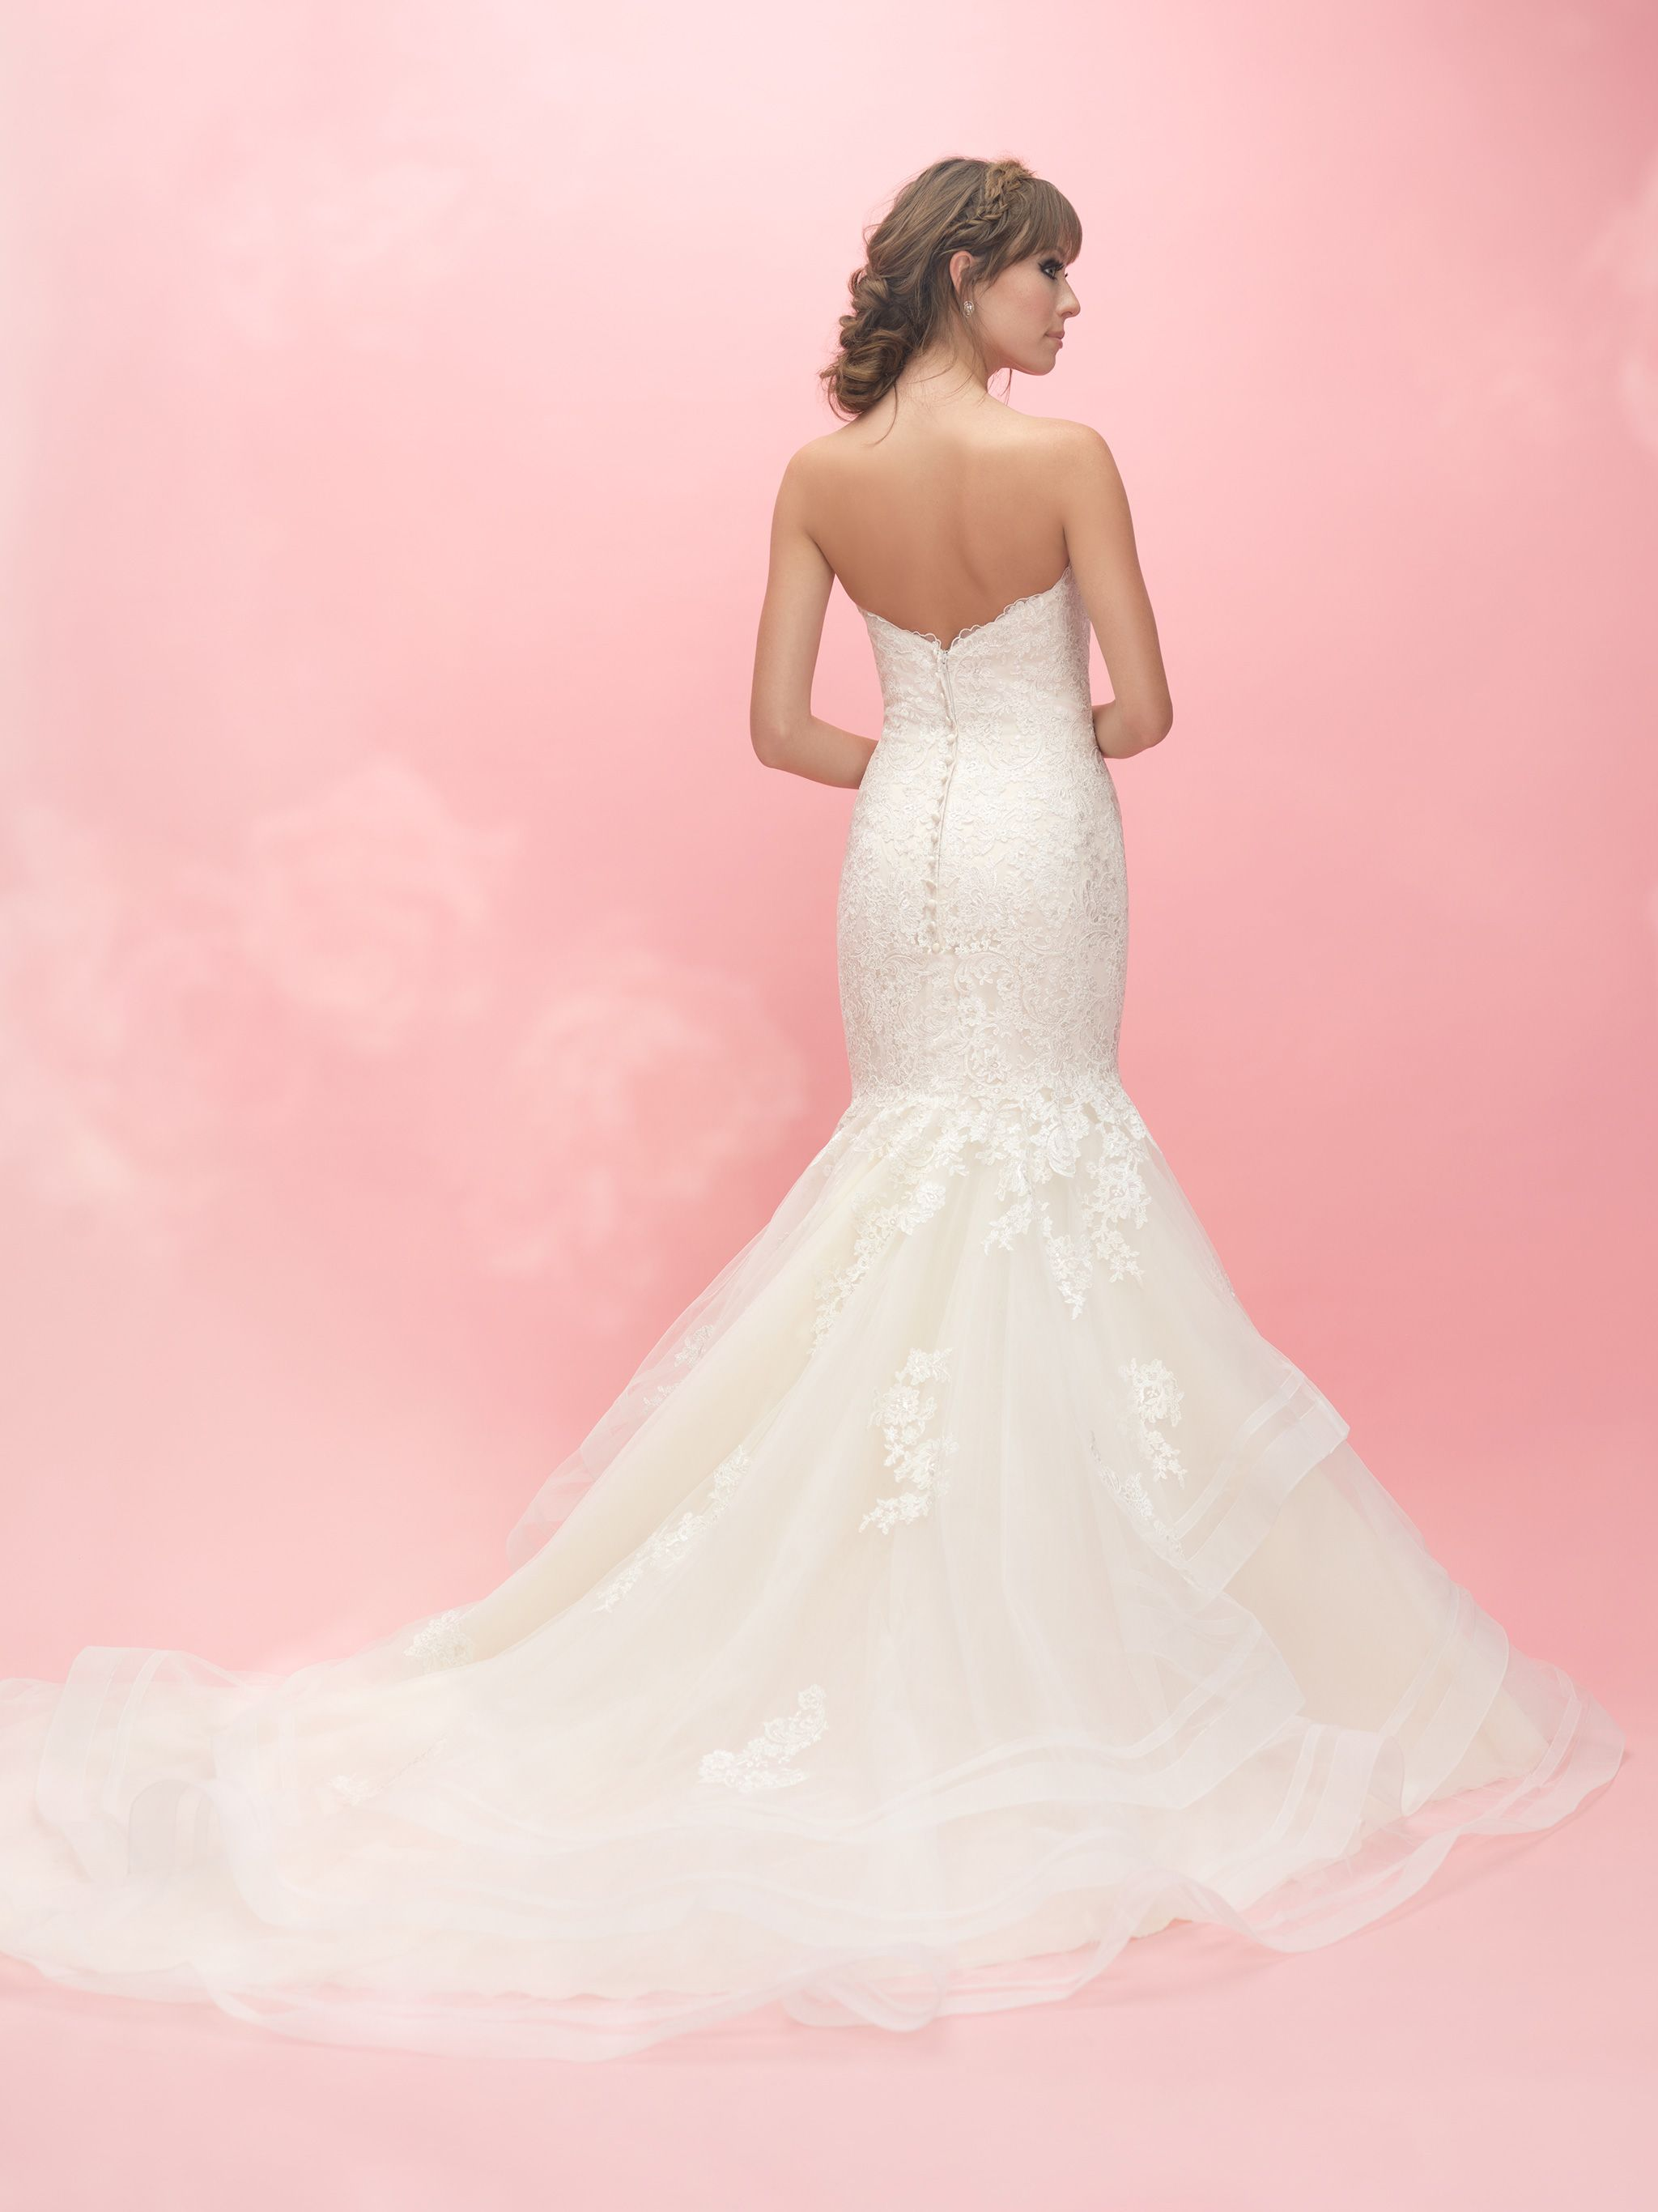 imagen principal | my dress | Pinterest | Wedding dress, Tulle ...